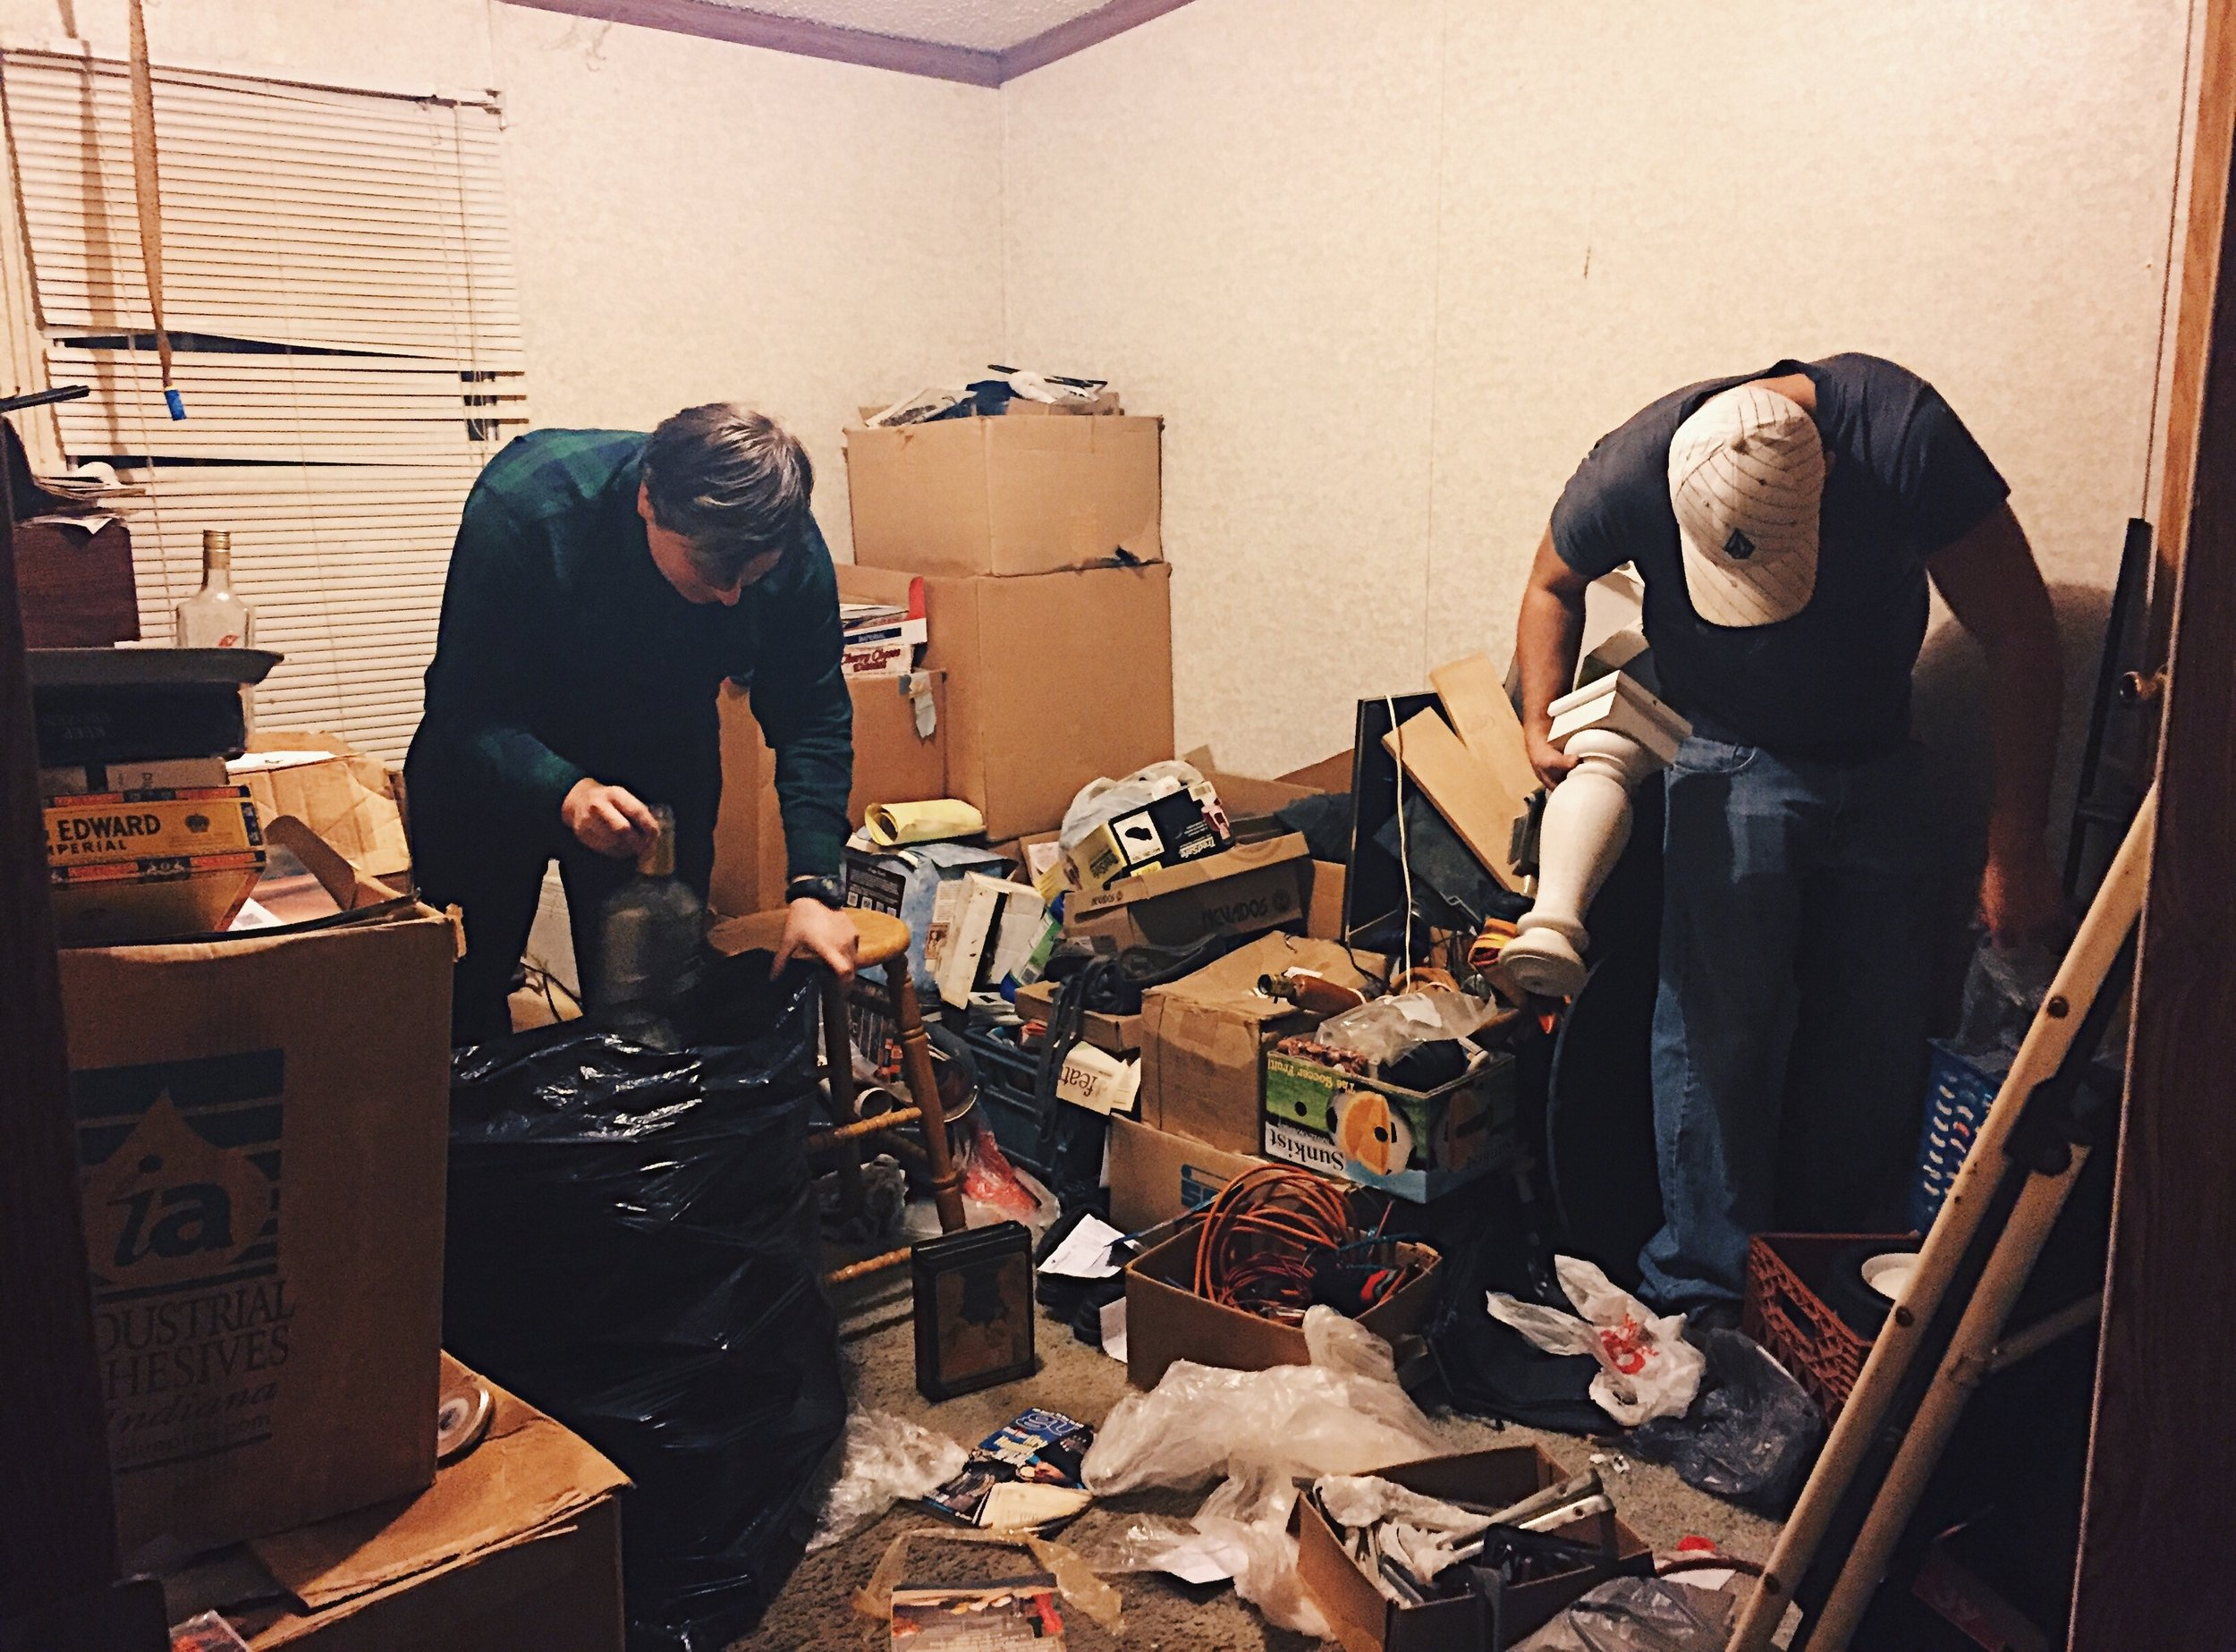 Jan. 4, 2017 — After going through his possessions in the bedroom, my brothers started cleaning my childhood room. He had claimed it as his own for storage, and for his alcohol.  Nearly 10 empty tequila bottles were thrown away as well as a case of beer and any other leftover alcohol. There was another room across the hall waiting to be cleaned.